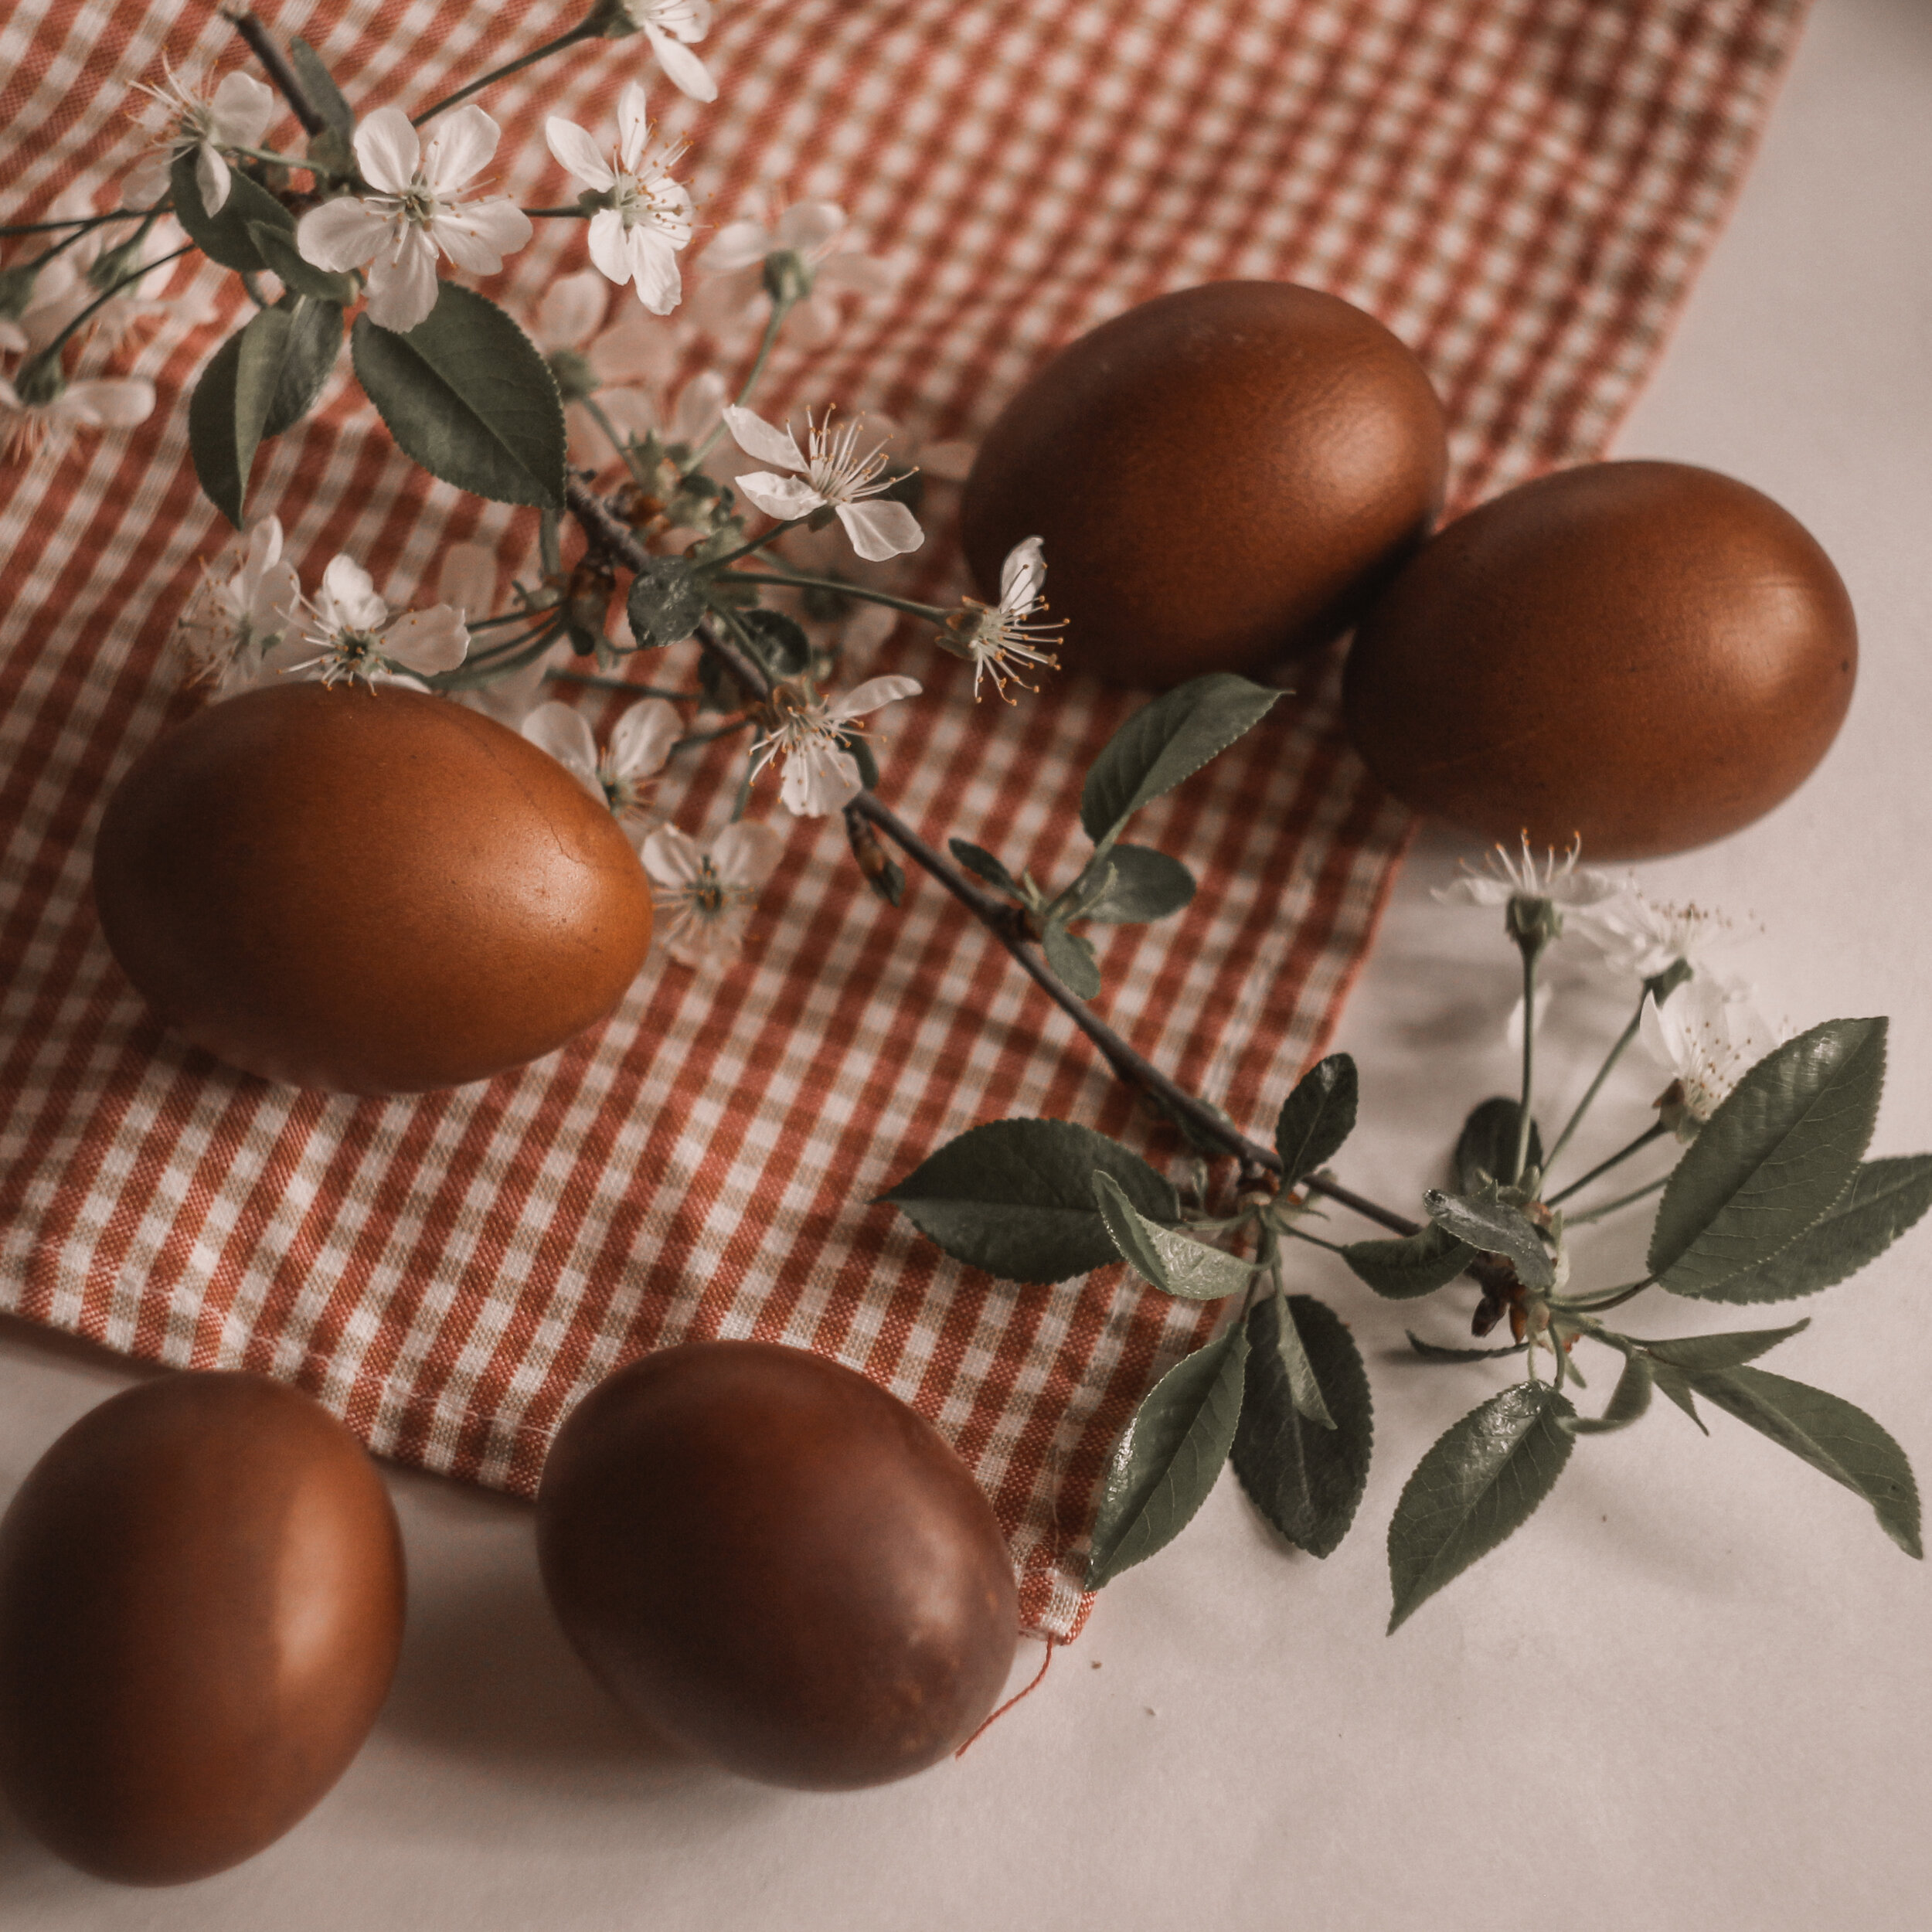 How To Make Homemade Dyed Easter Eggs Using Items You Already Have At Home Czech Center Museum Houston A Place To Celebrate Our World S Art Music Dance And Diverse Cultures